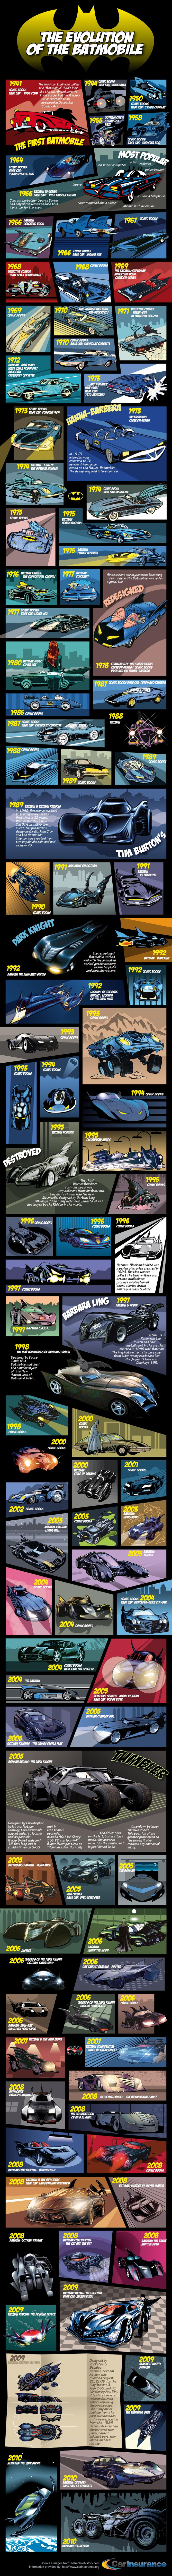 Batman Batmobile Collection